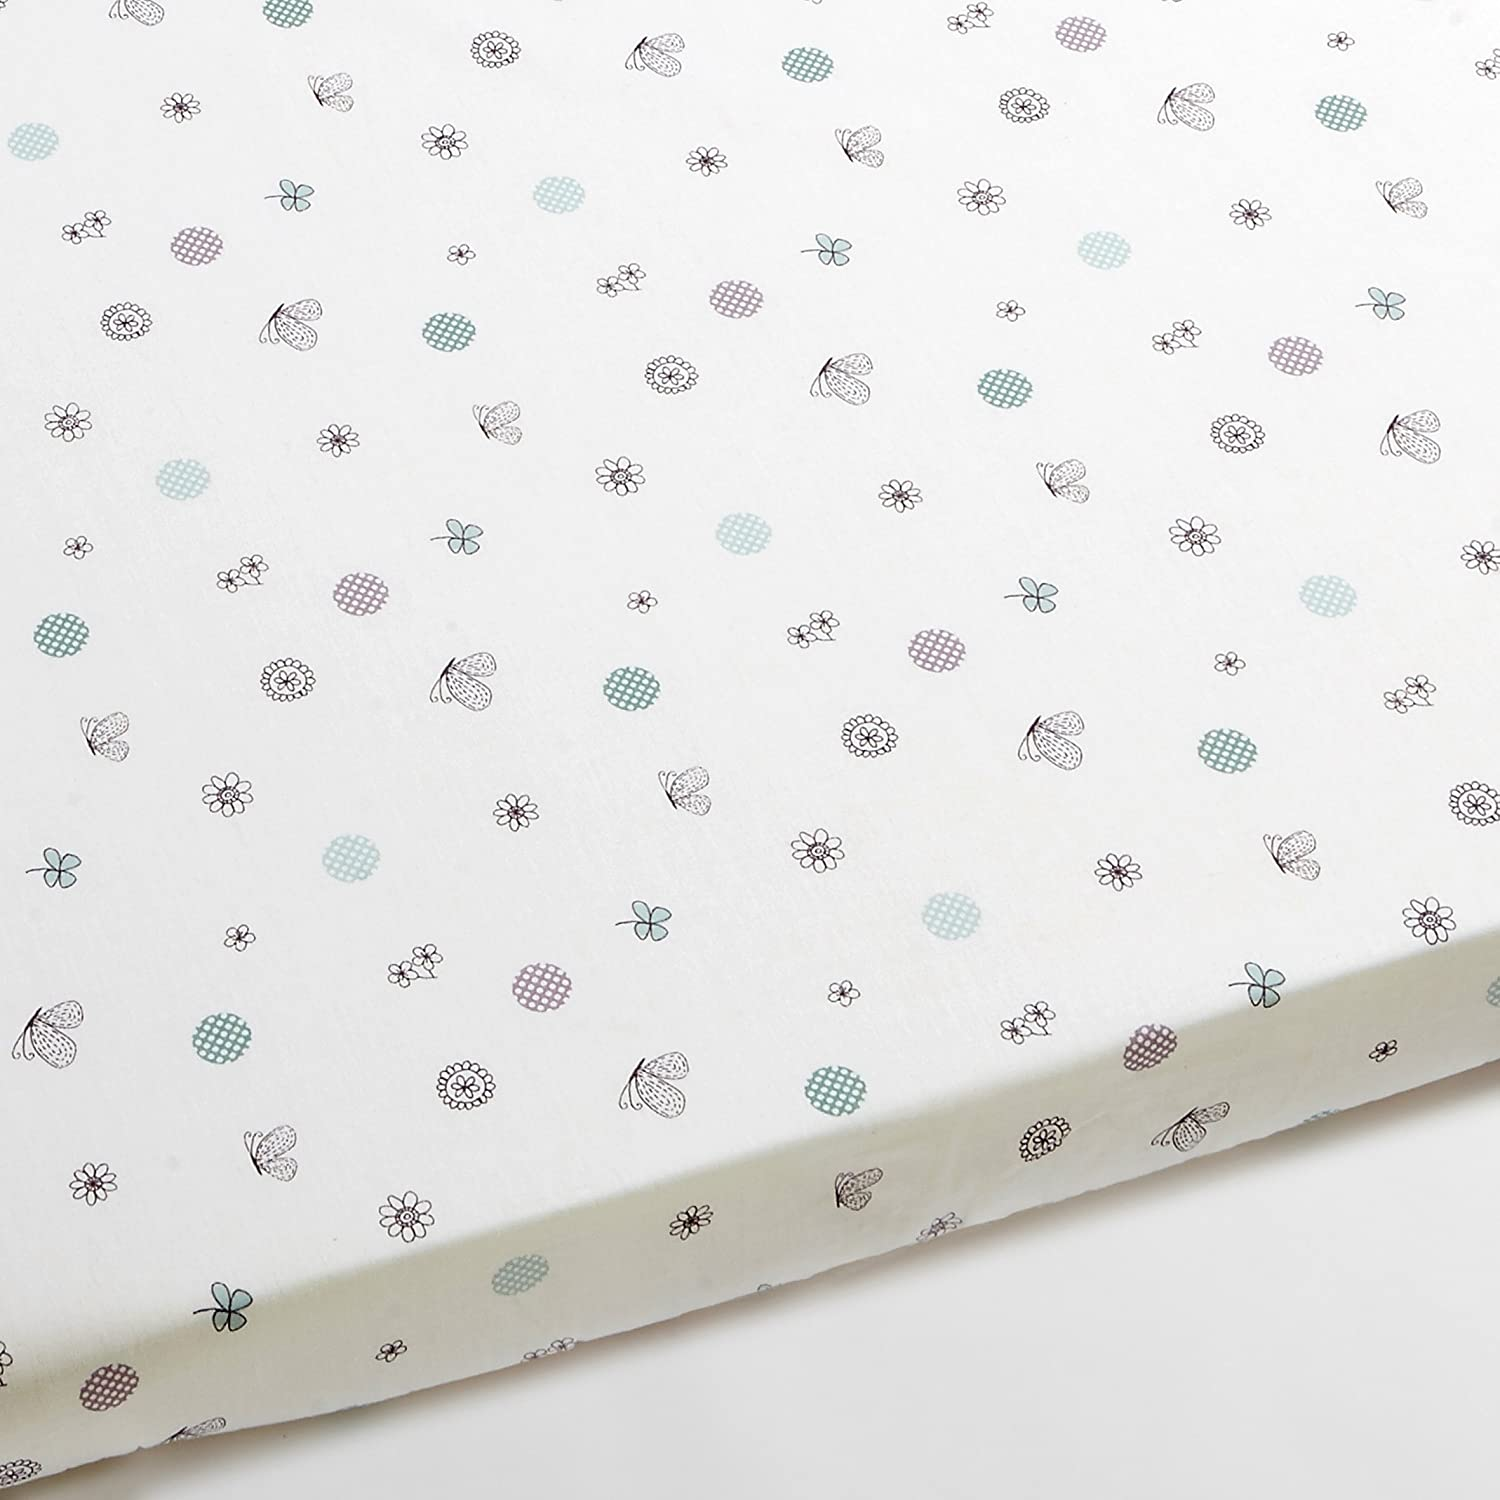 Fitted Sheet For Child With Stars 90x160